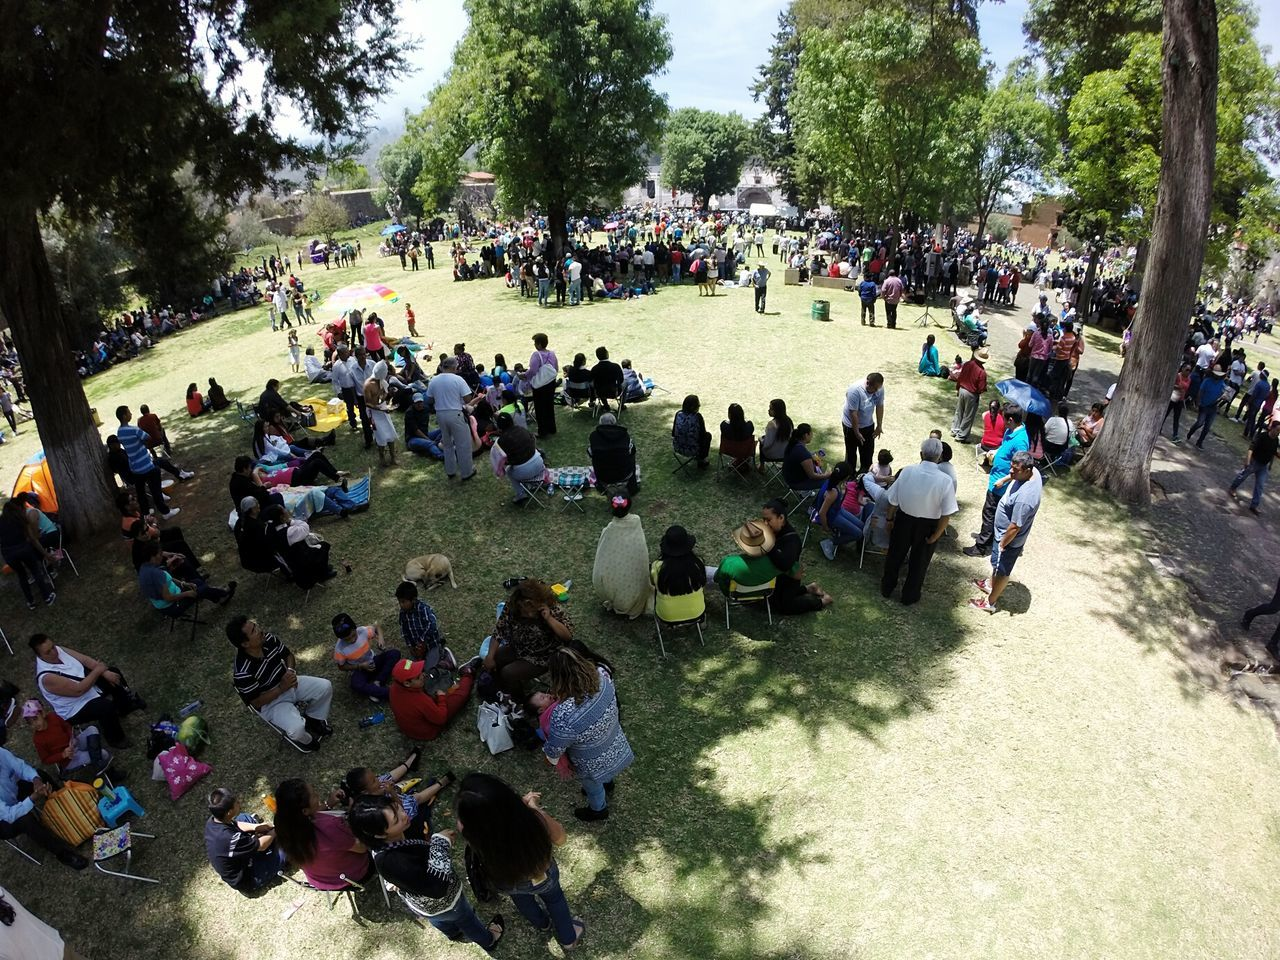 Tourists at the Santa Ana church atrium, during the Good Friday celebration. Fisheye Tourism Tzintzuntzan Michoacan Good Friday Religion Catholic People Overview Crowd Michoacan